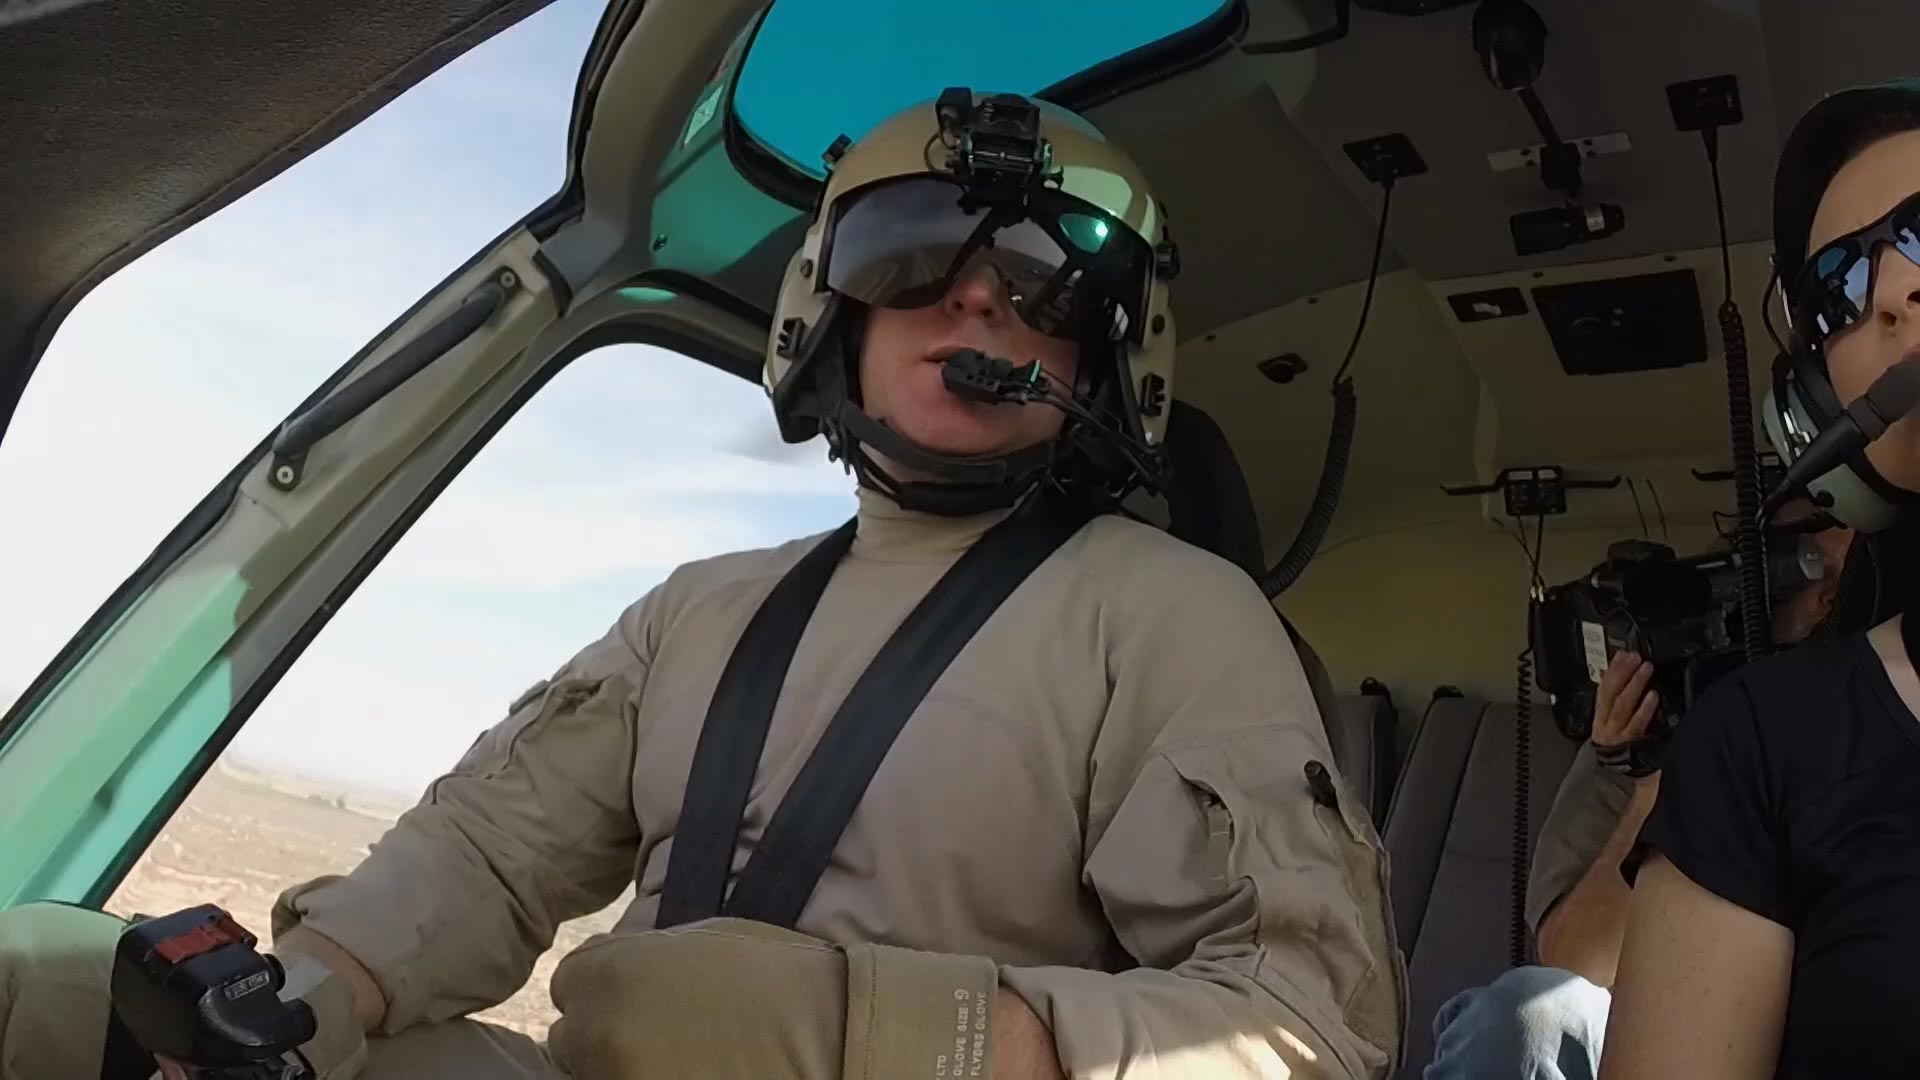 An air interdiction pilot in the cockpit of a helicopter belonging to U.S. Customs Air and Marine in Customs and Border Protection's Yuma Sector.